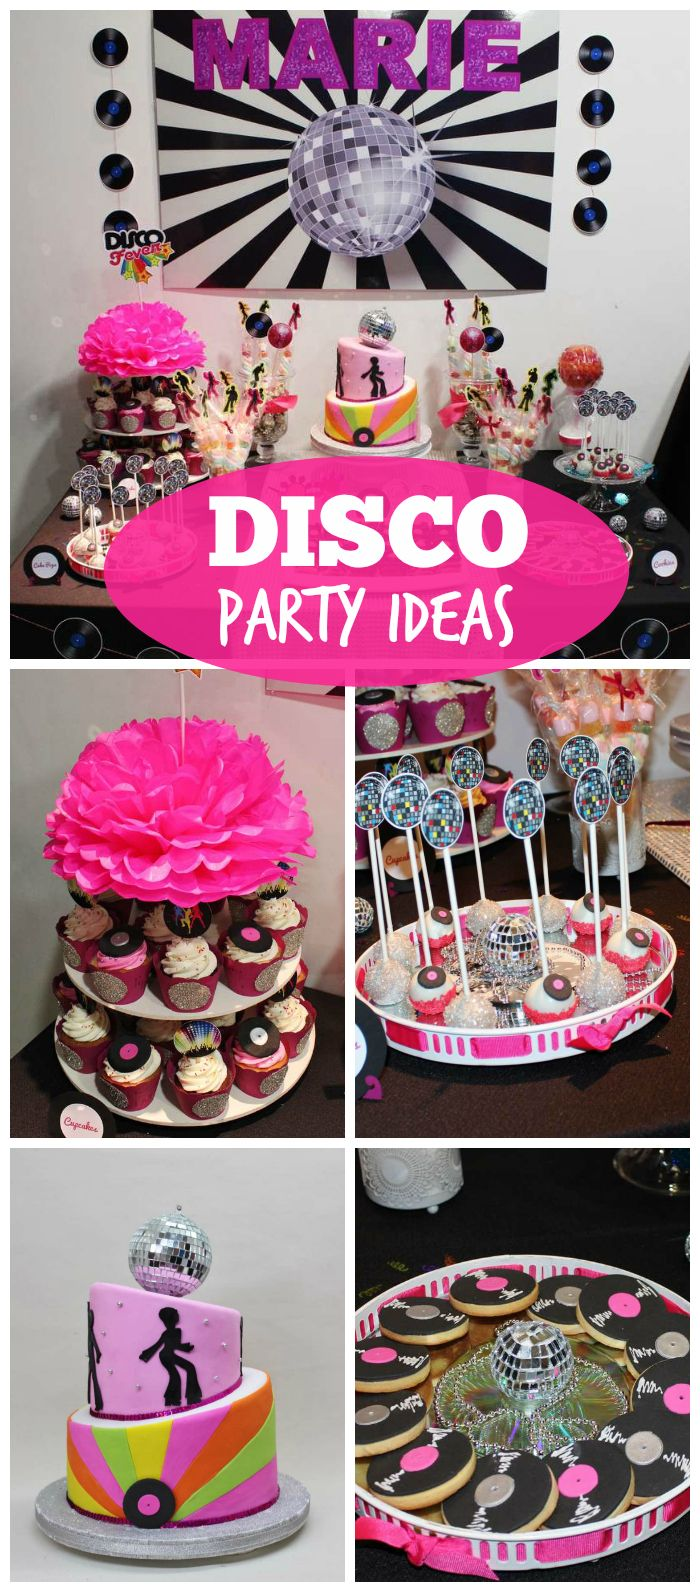 Disco birthday party on pinterest kids disco party for 70s theme decoration ideas